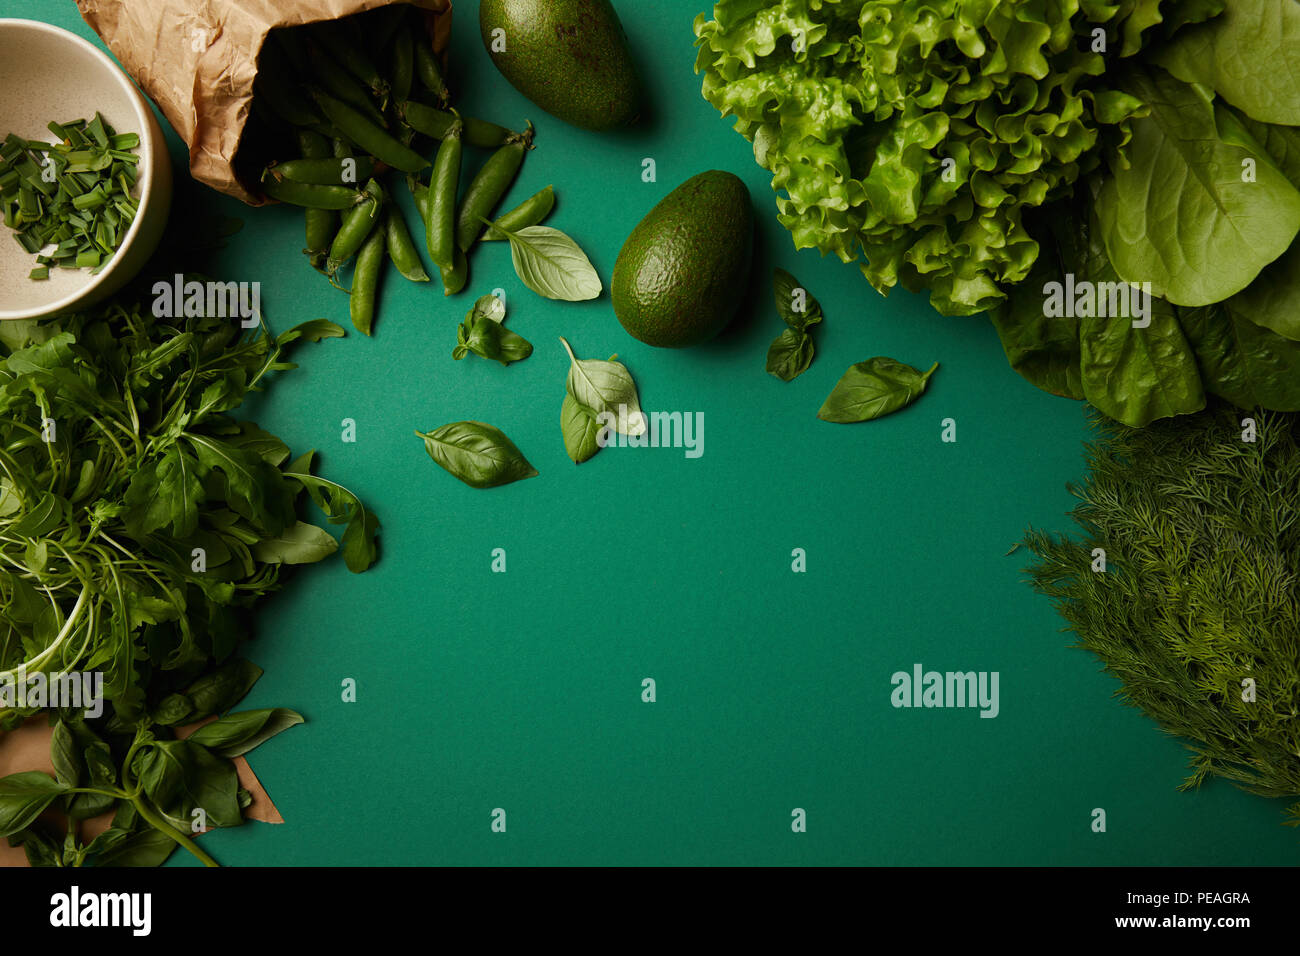 top view of different ripe vegetables on green surface - Stock Image